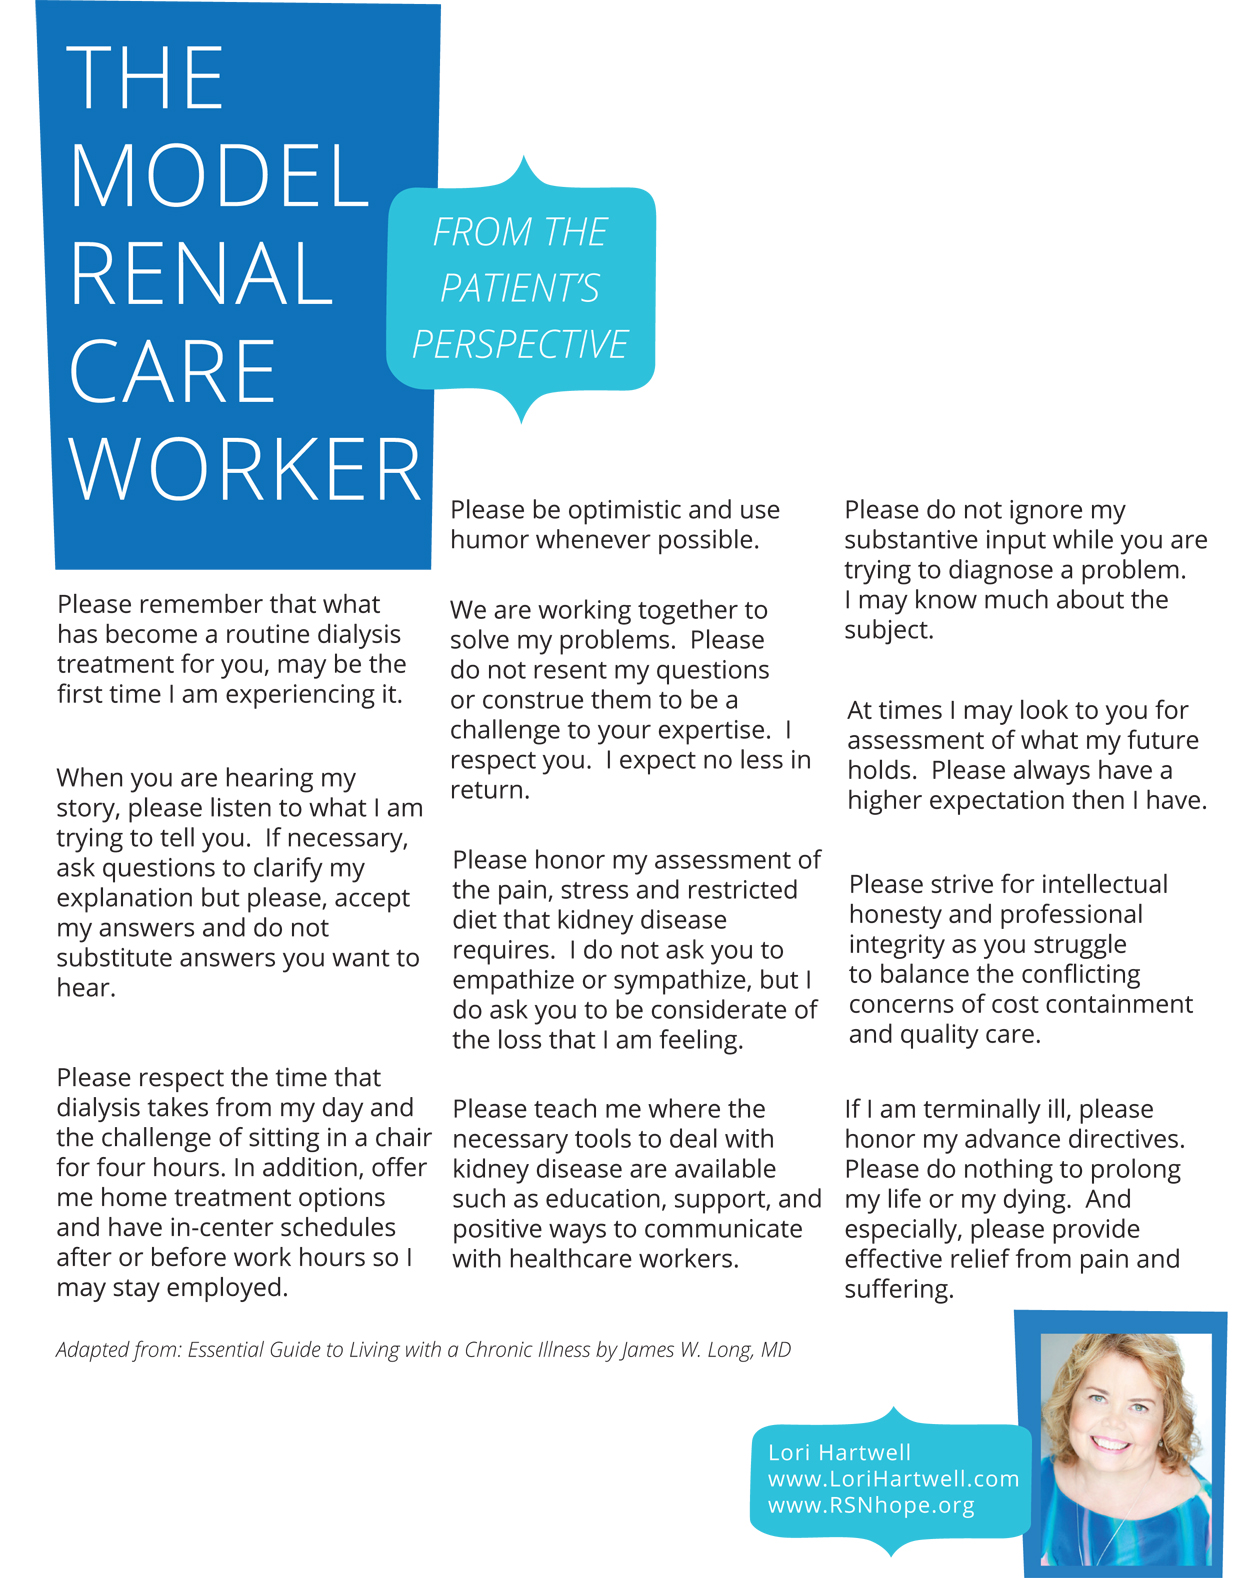 Patients Perspective-Model renal care worker - Lori Hartwell-2